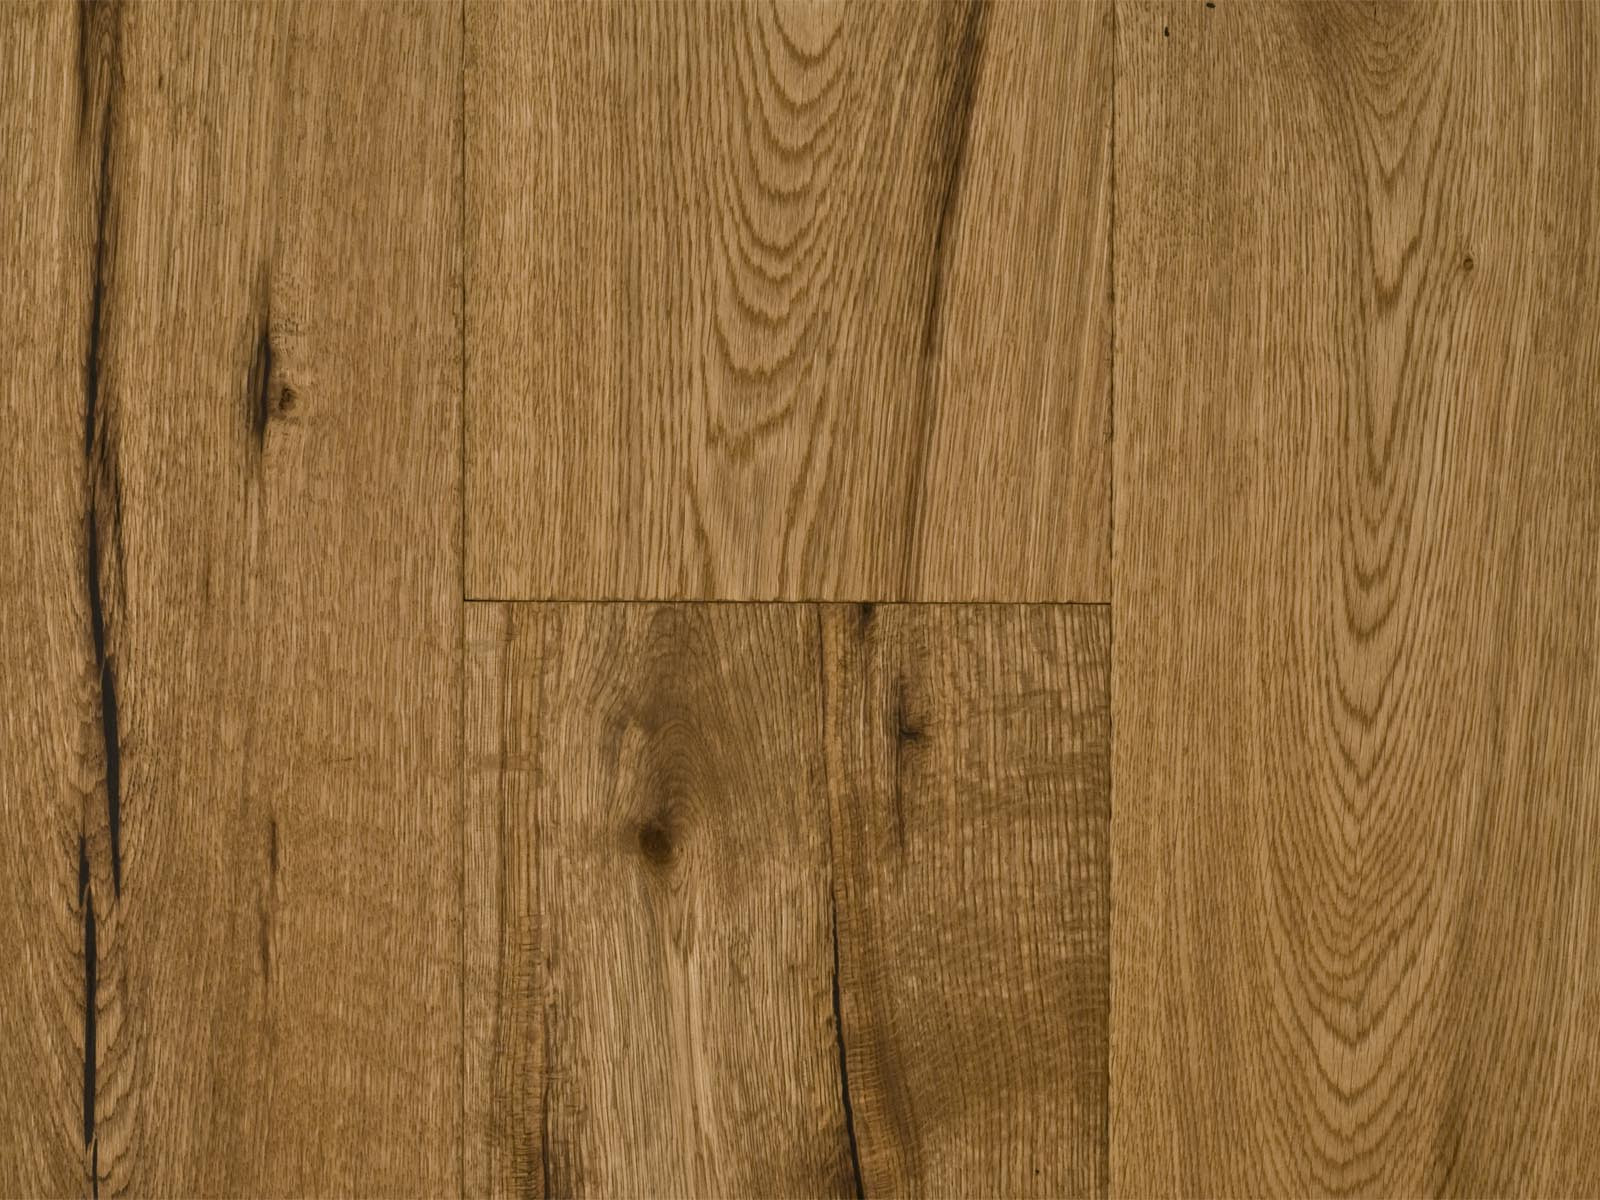 hickory hardwood flooring for sale of duchateau hardwood flooring houston tx discount engineered wood with natural european oak